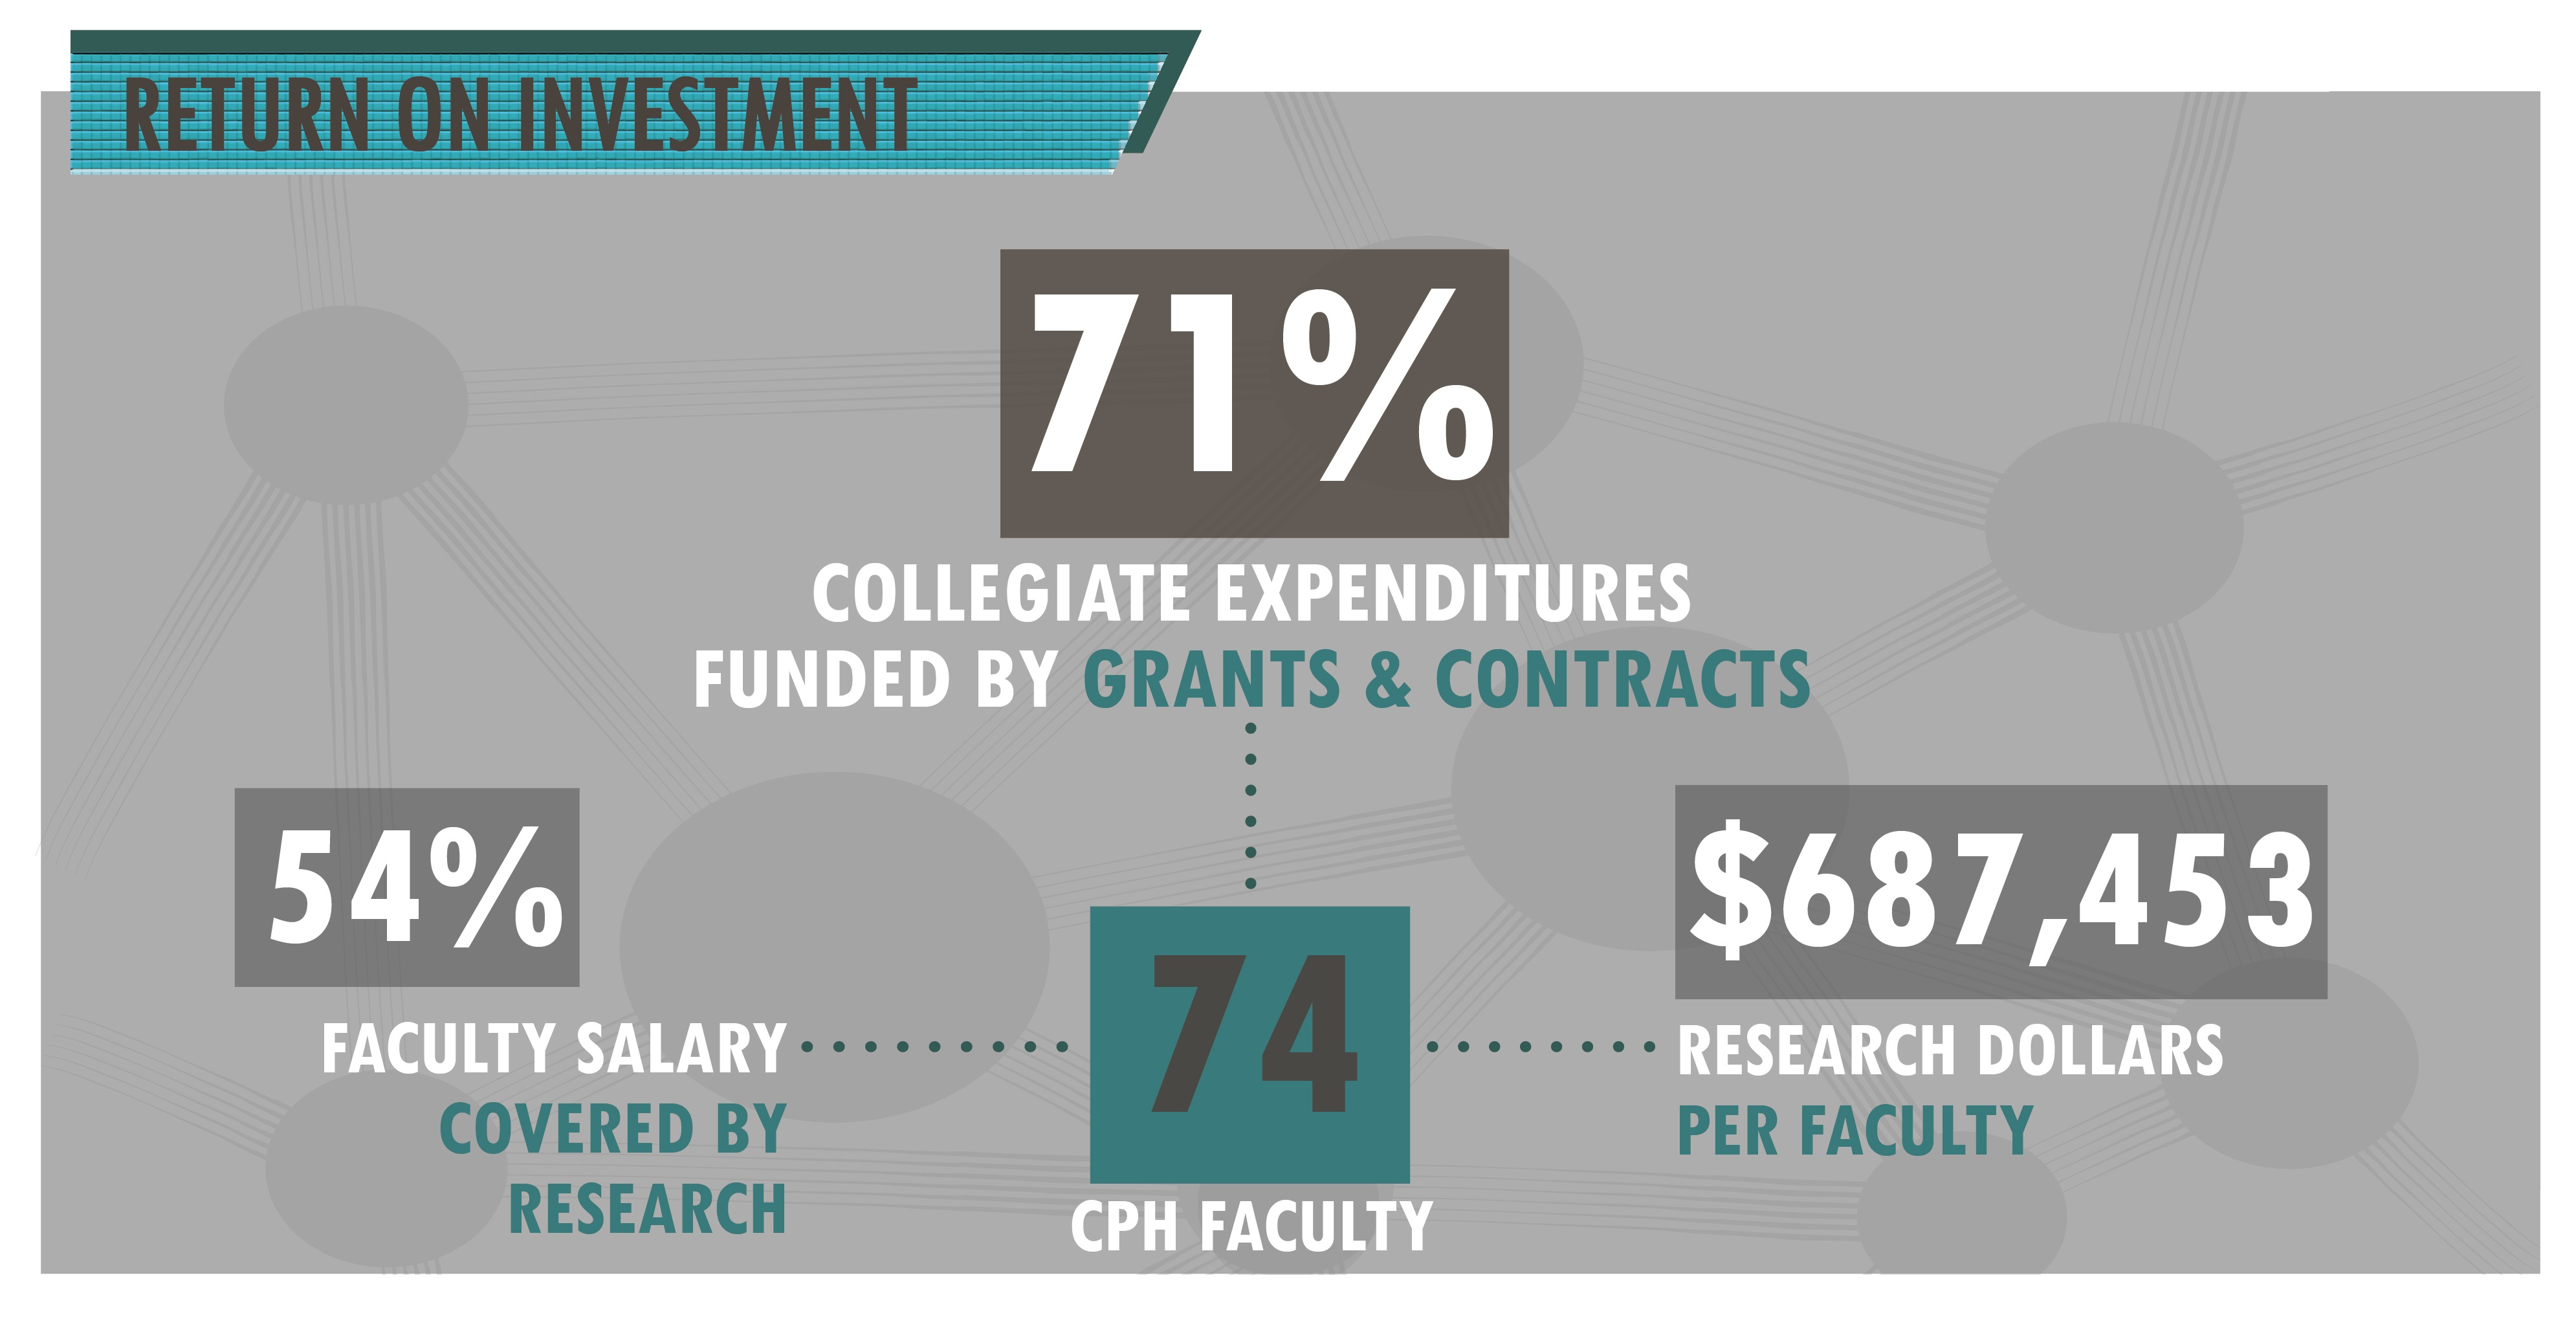 The 74 faculty members in the College of Public health bring in an average of $687,453 in research money.